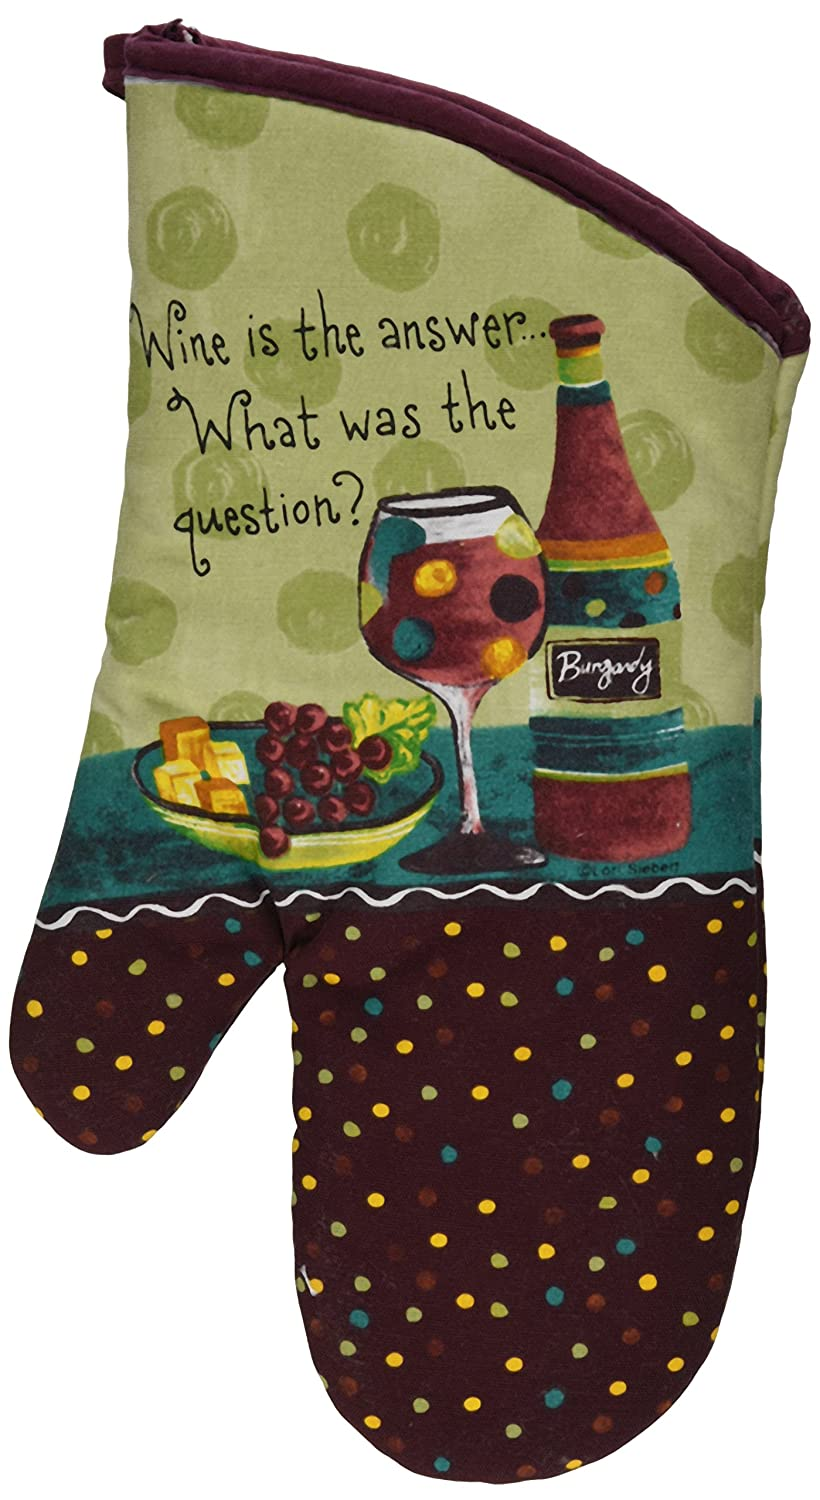 Kay Dee Designs Cotton Oven Mitt, Wine is The Answer